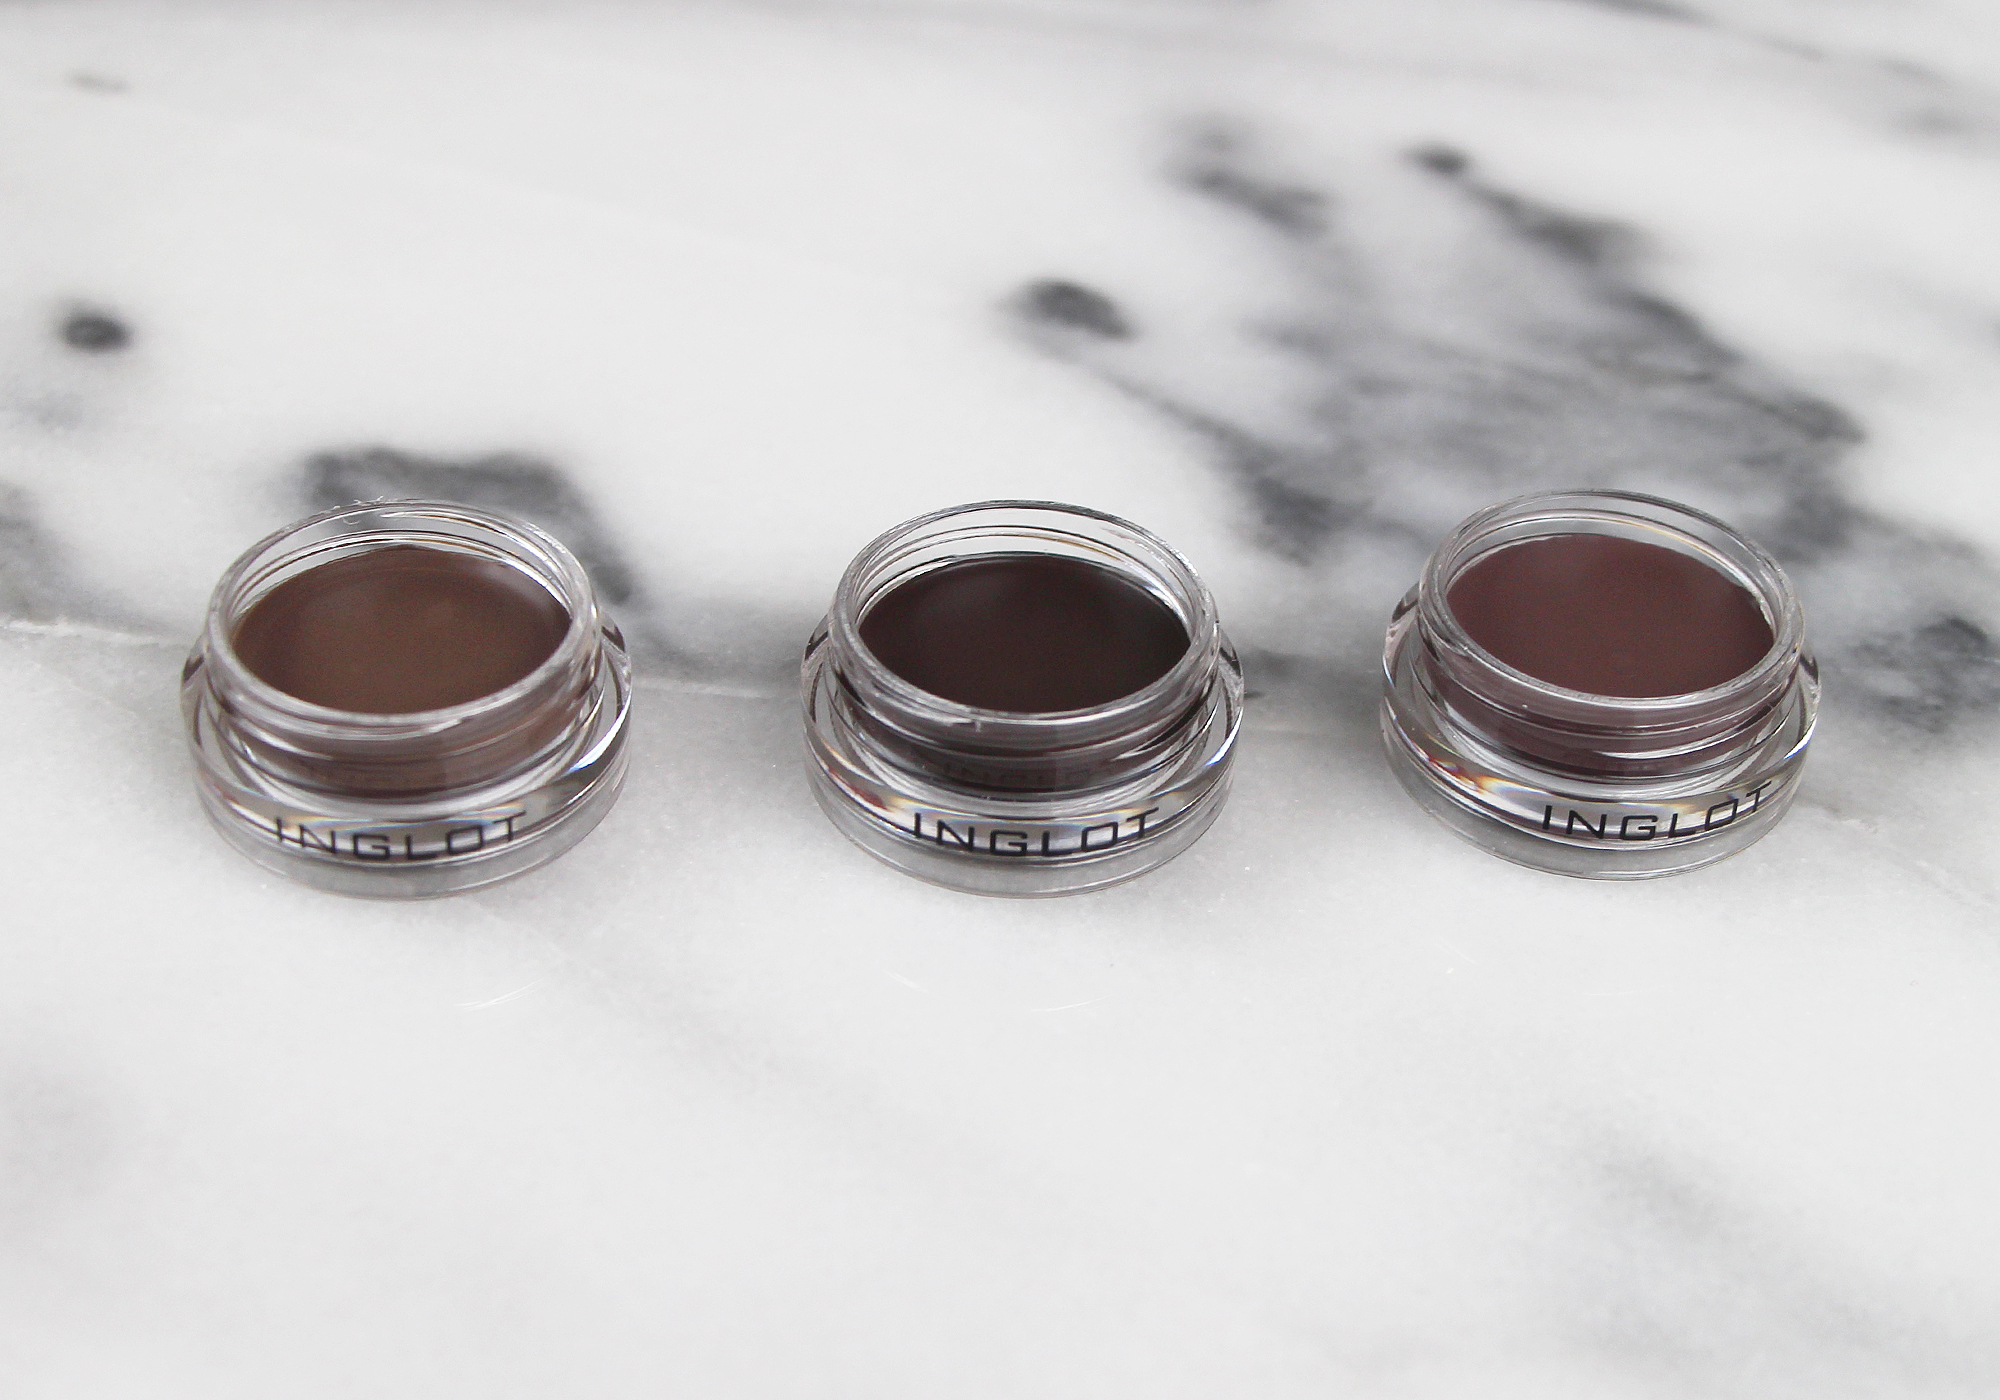 Amc Brow Liner Gel From Inglot The Story About Why I Started To